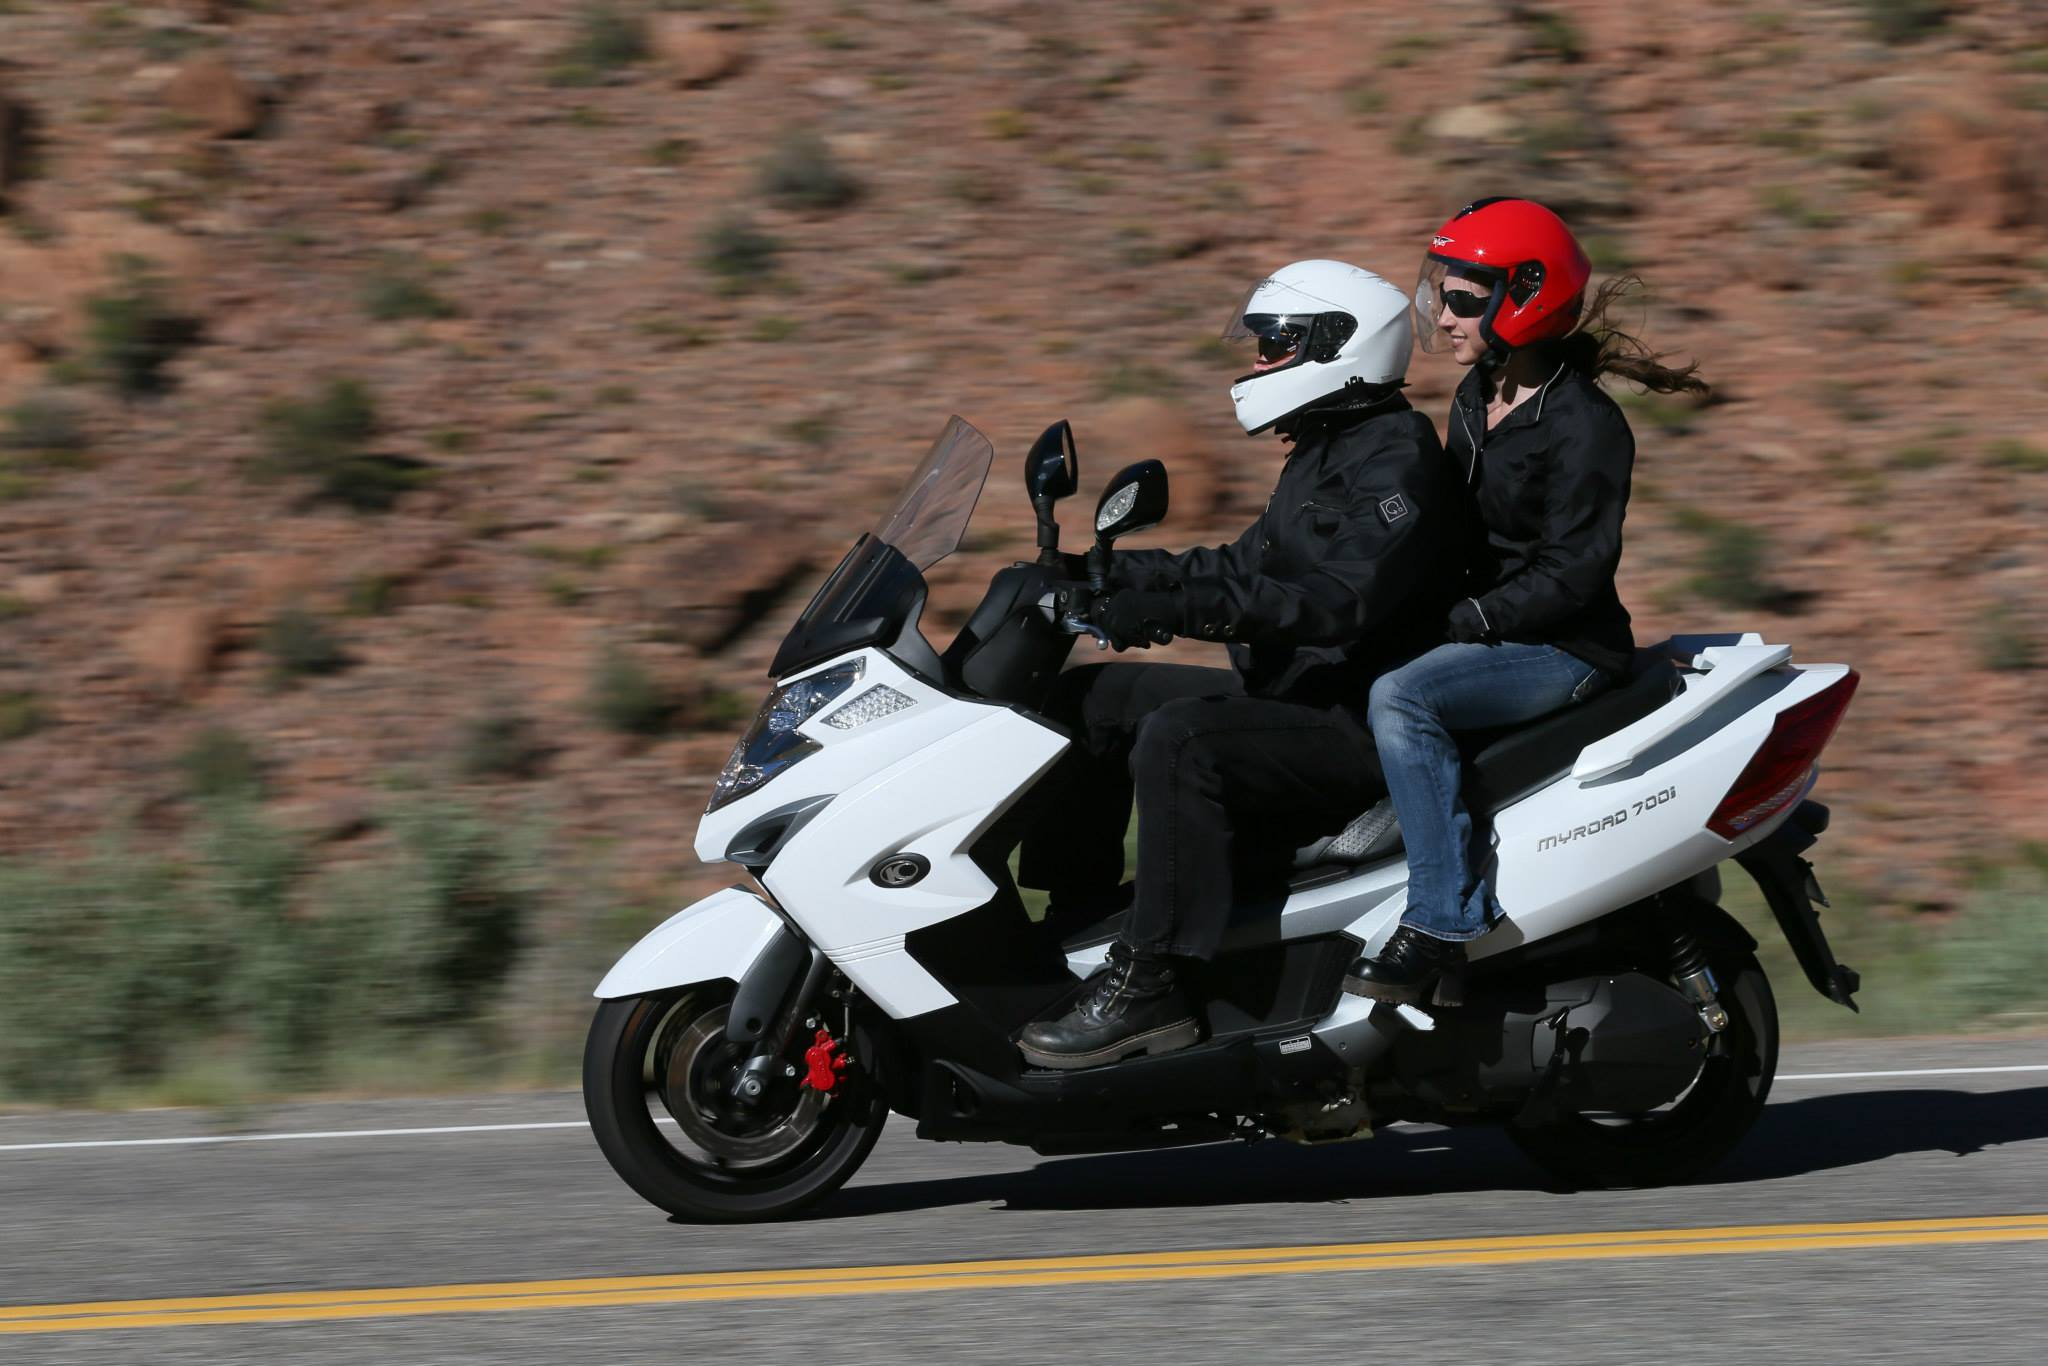 2014 Kymco Myroad 700i Is The Largest Displacement Us